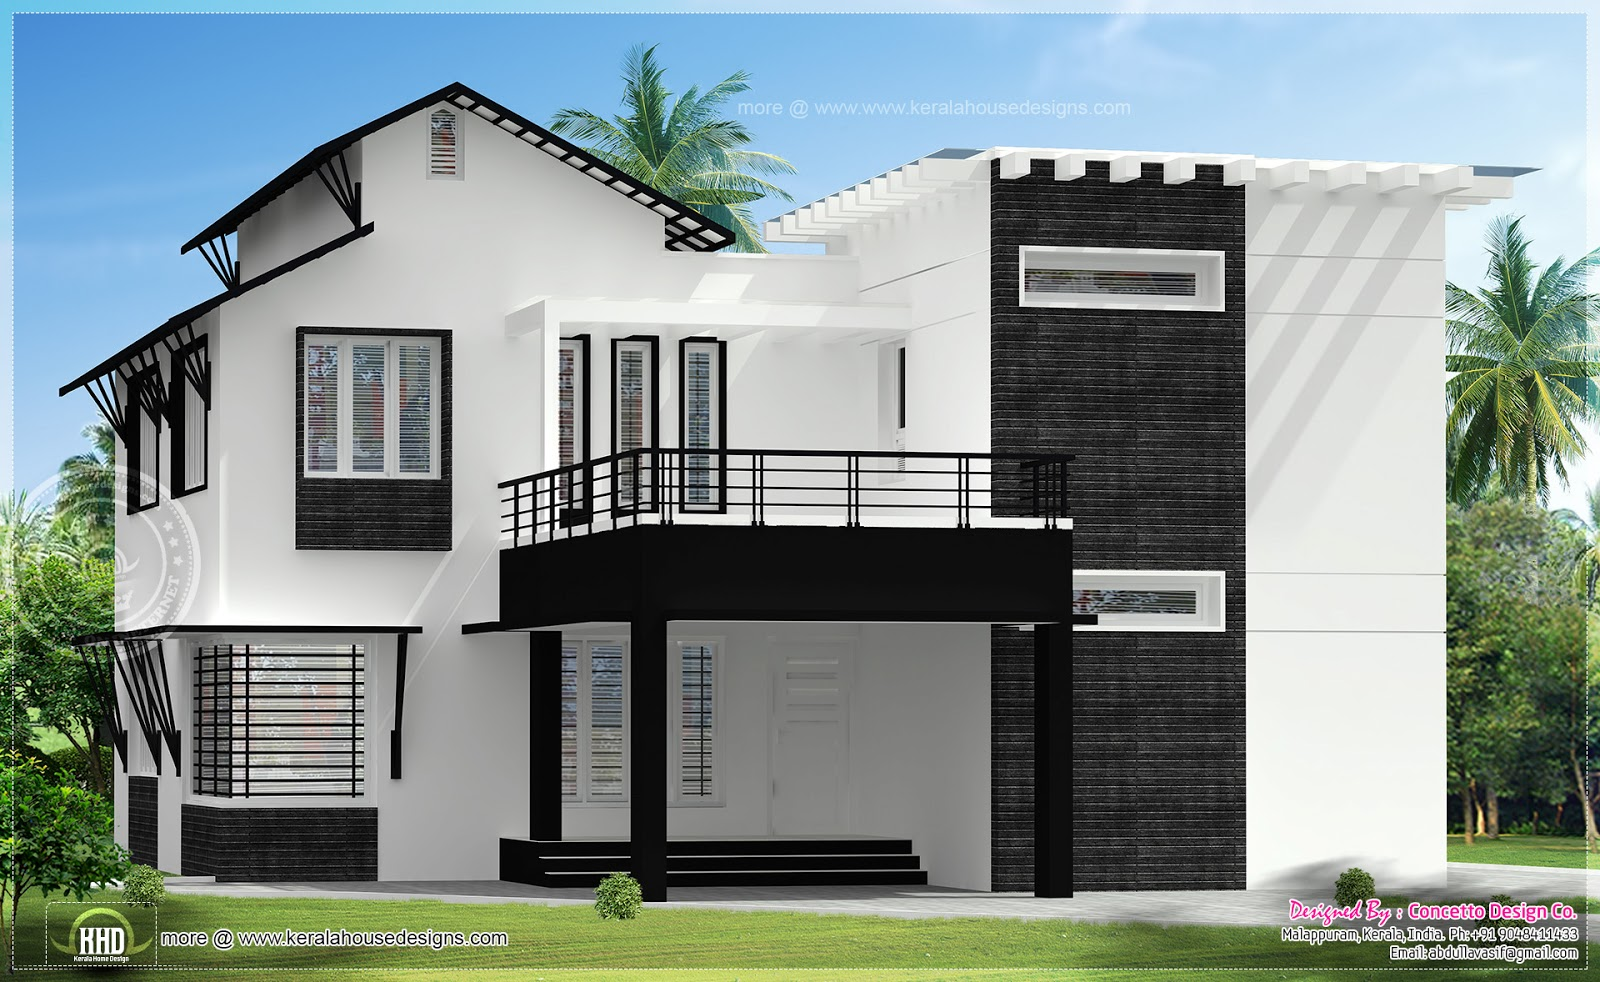 5 different house exteriors by concetto design kerala for Design house